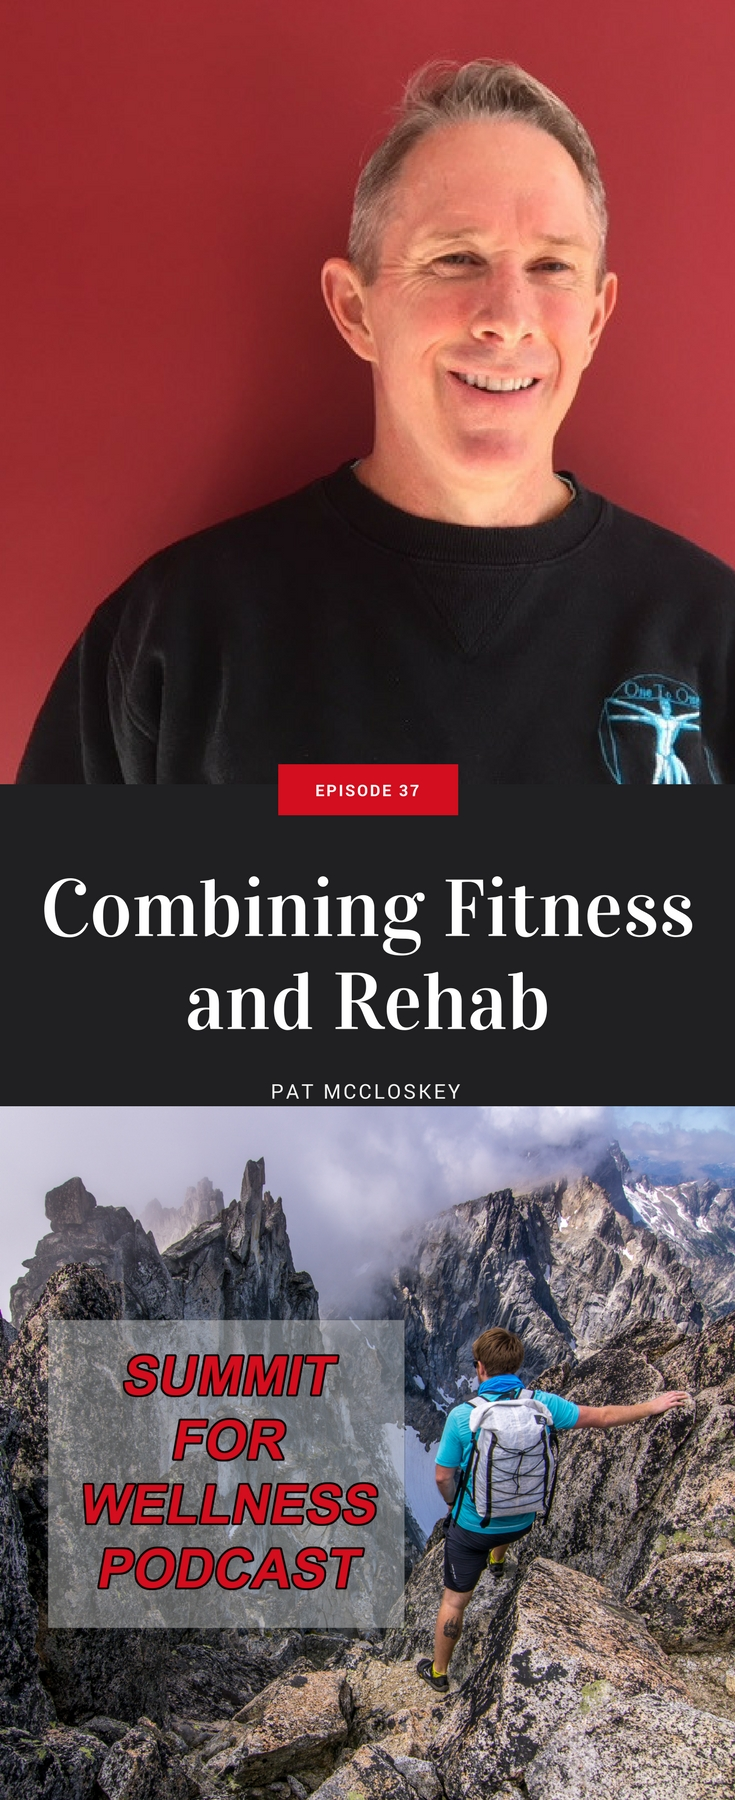 Pat McCloskey discusses how he integrates movement-based exercises into his training protocols and how it can become a rehab process